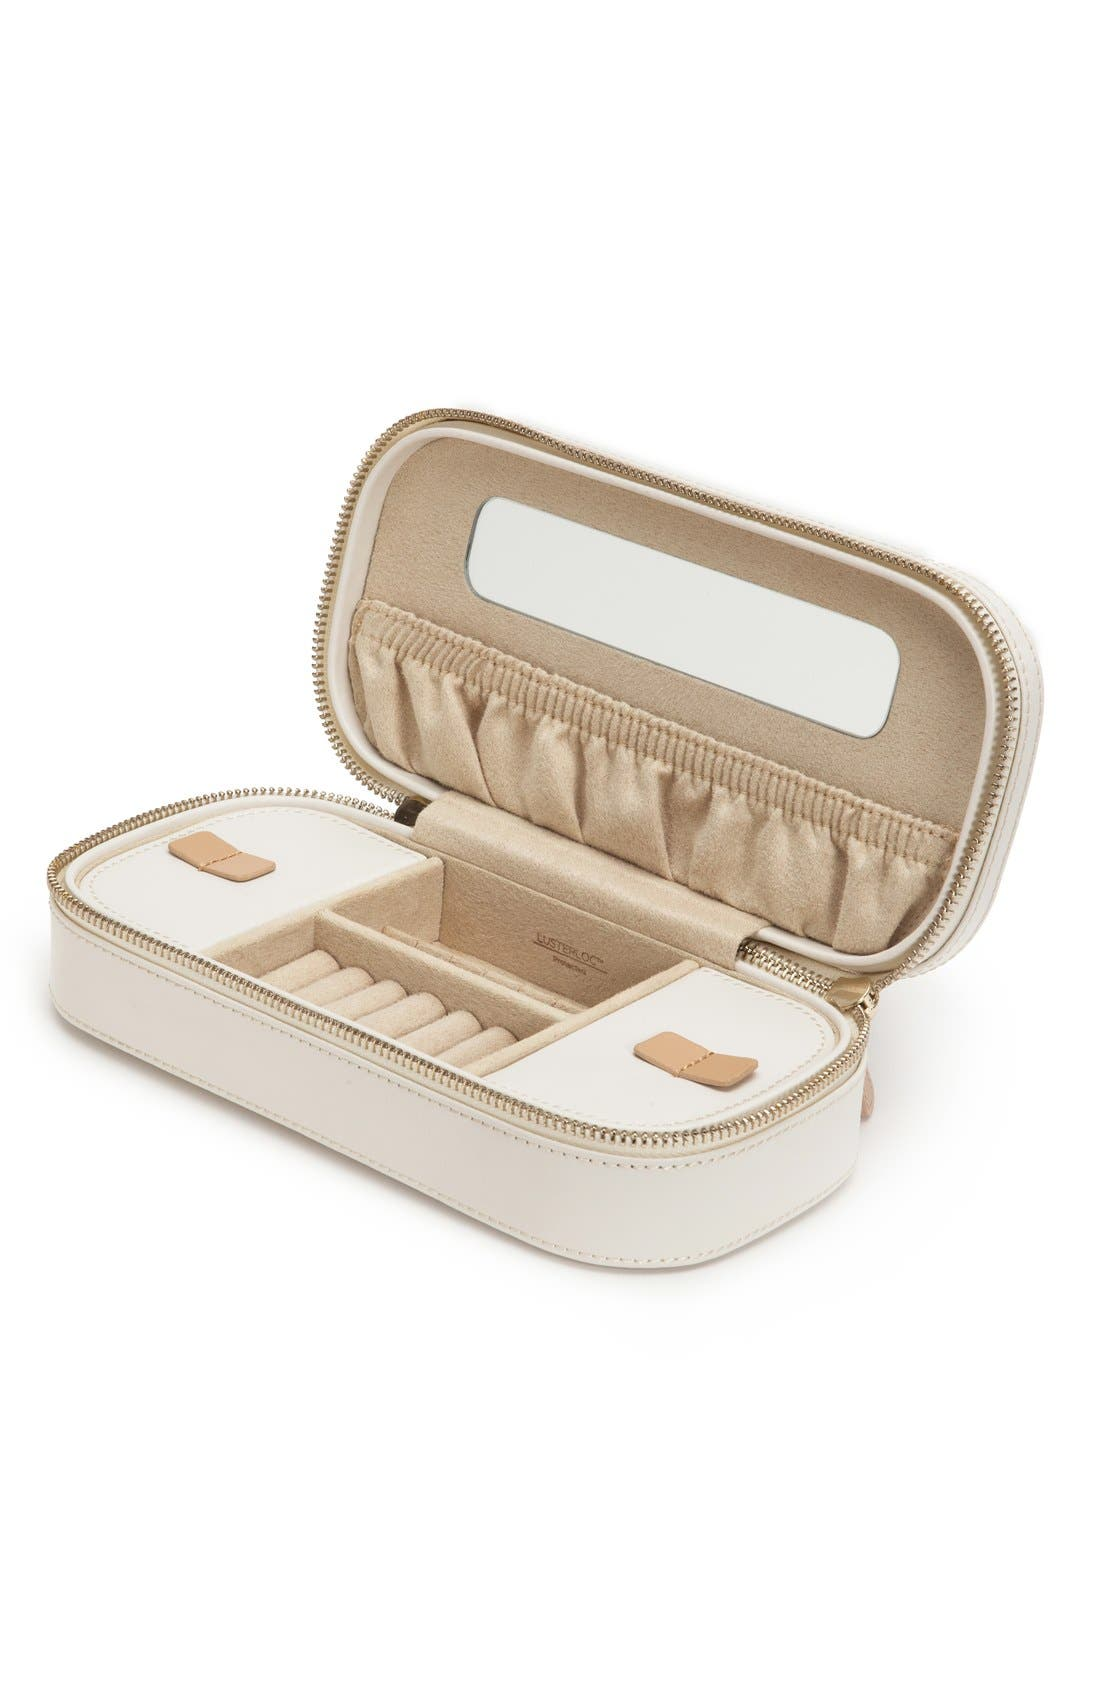 'Chloe' Zip Jewelry Case,                         Main,                         color, Cream